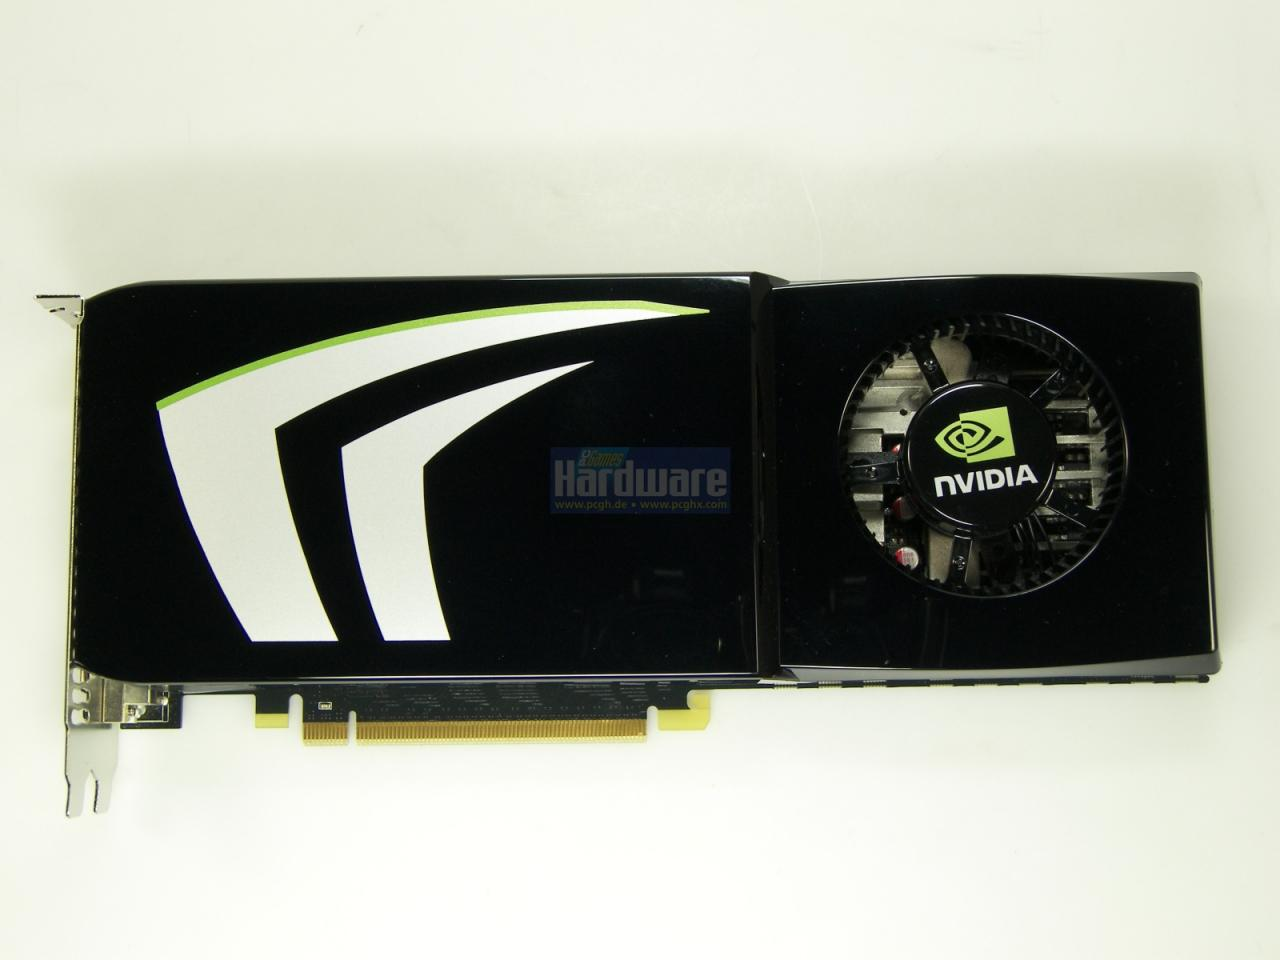 [31/03/09] Nvidia Geforce GTX 275